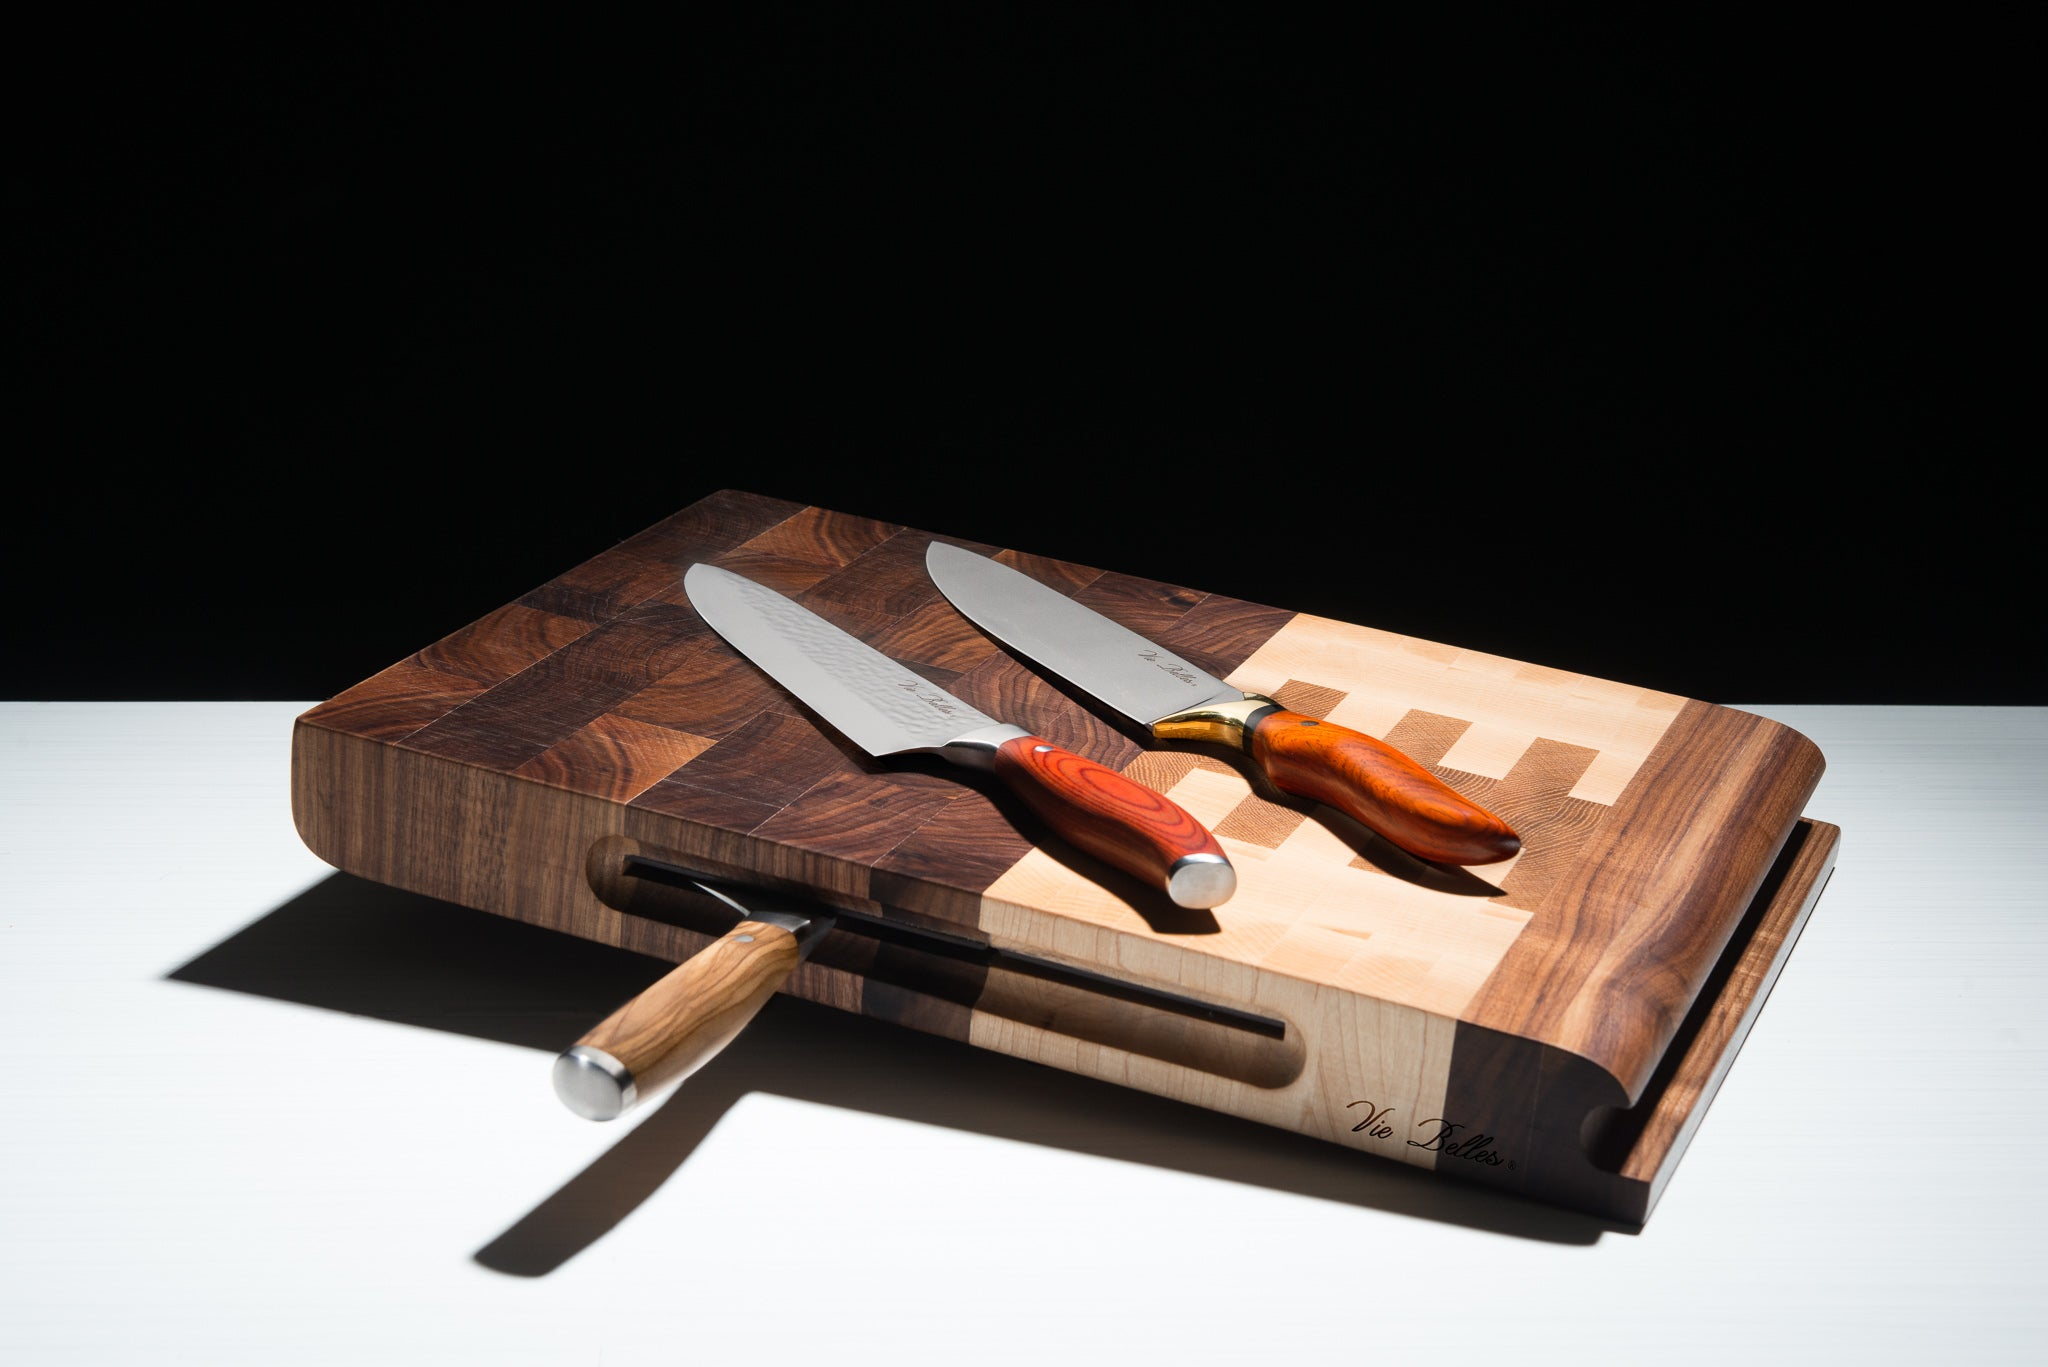 Vie Belles Everyday Cutting Board